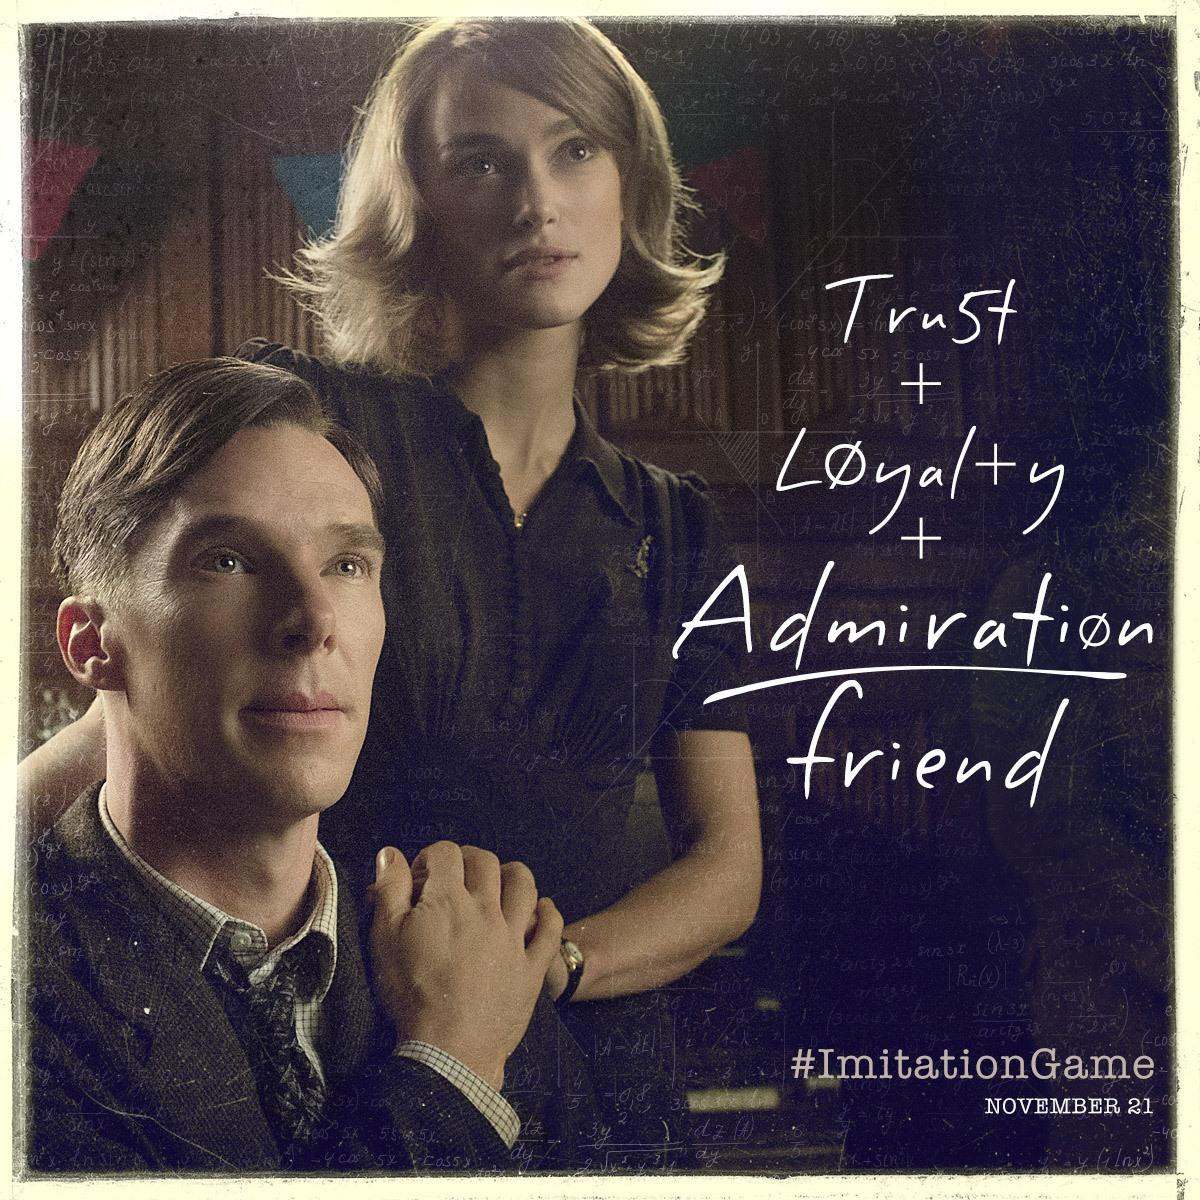 The Imitation Game on Twitter: